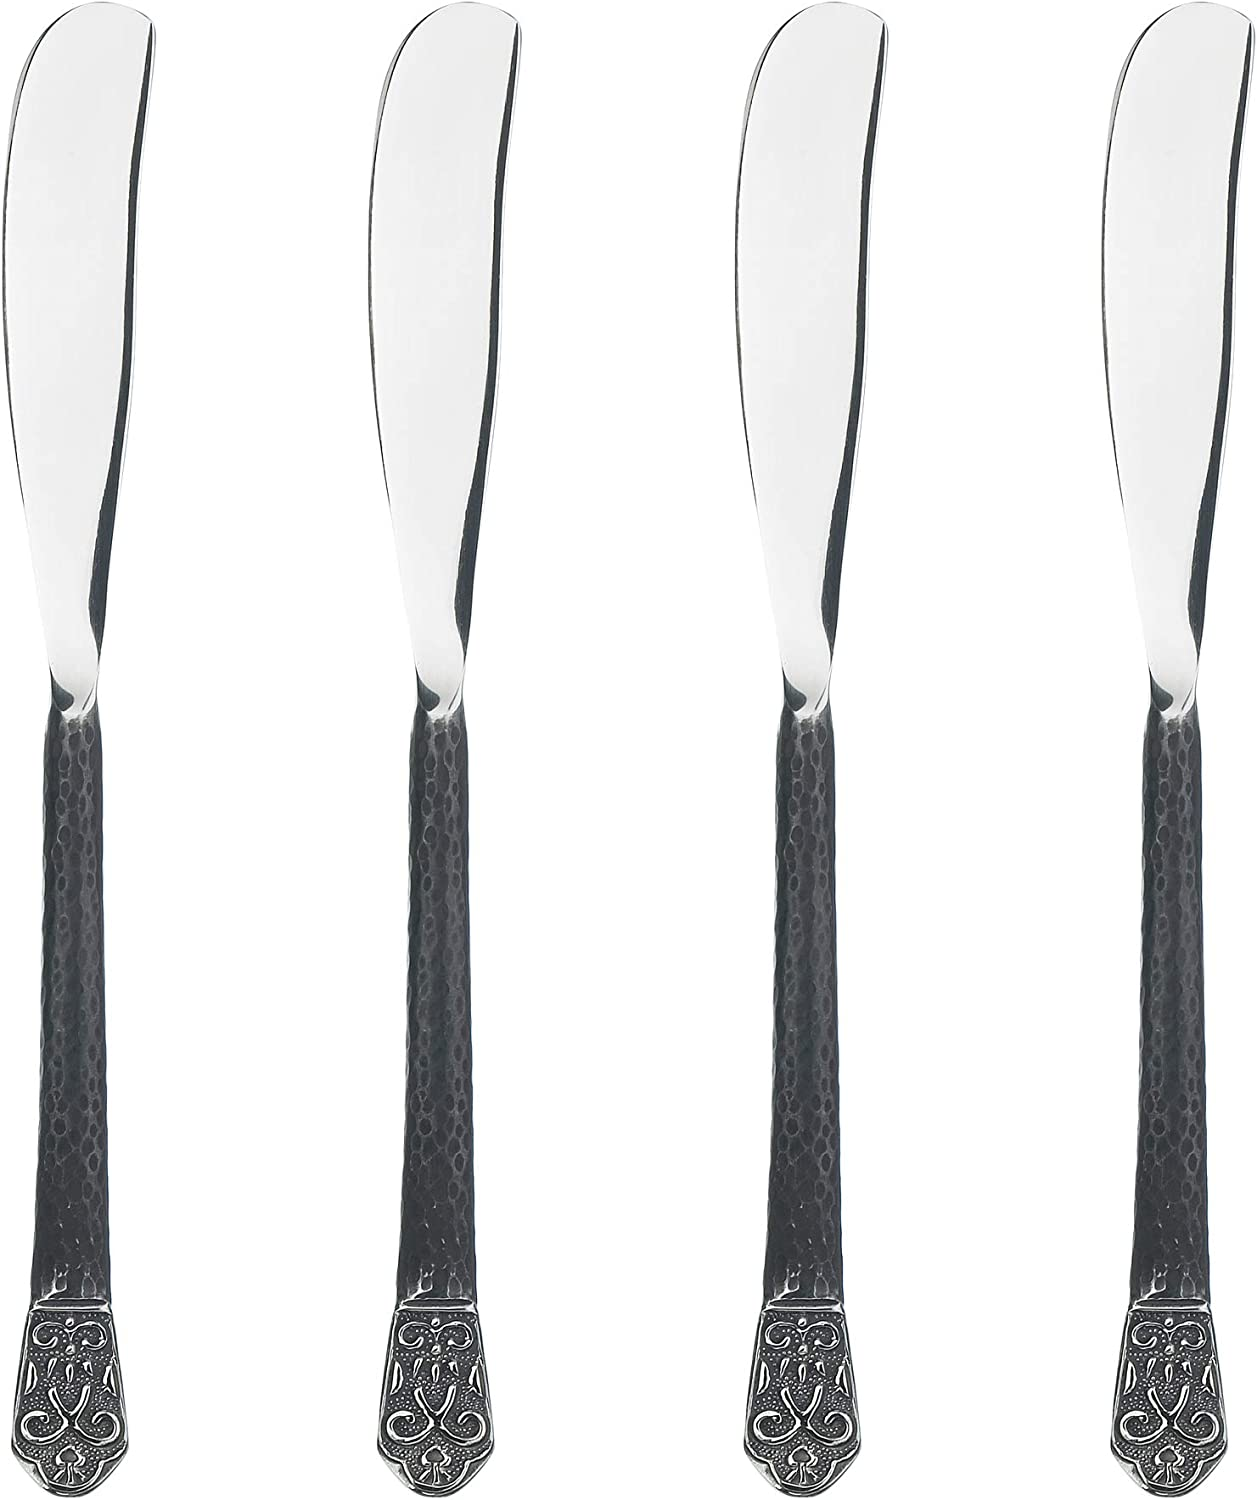 Gourmet Settings 4-Piece Knife Set-Avalon Collection Polished/Matte Stainless Steel Spreaders - Cheese and Butter Spreading Knives, 6.75 inches, Dishwasher Safe